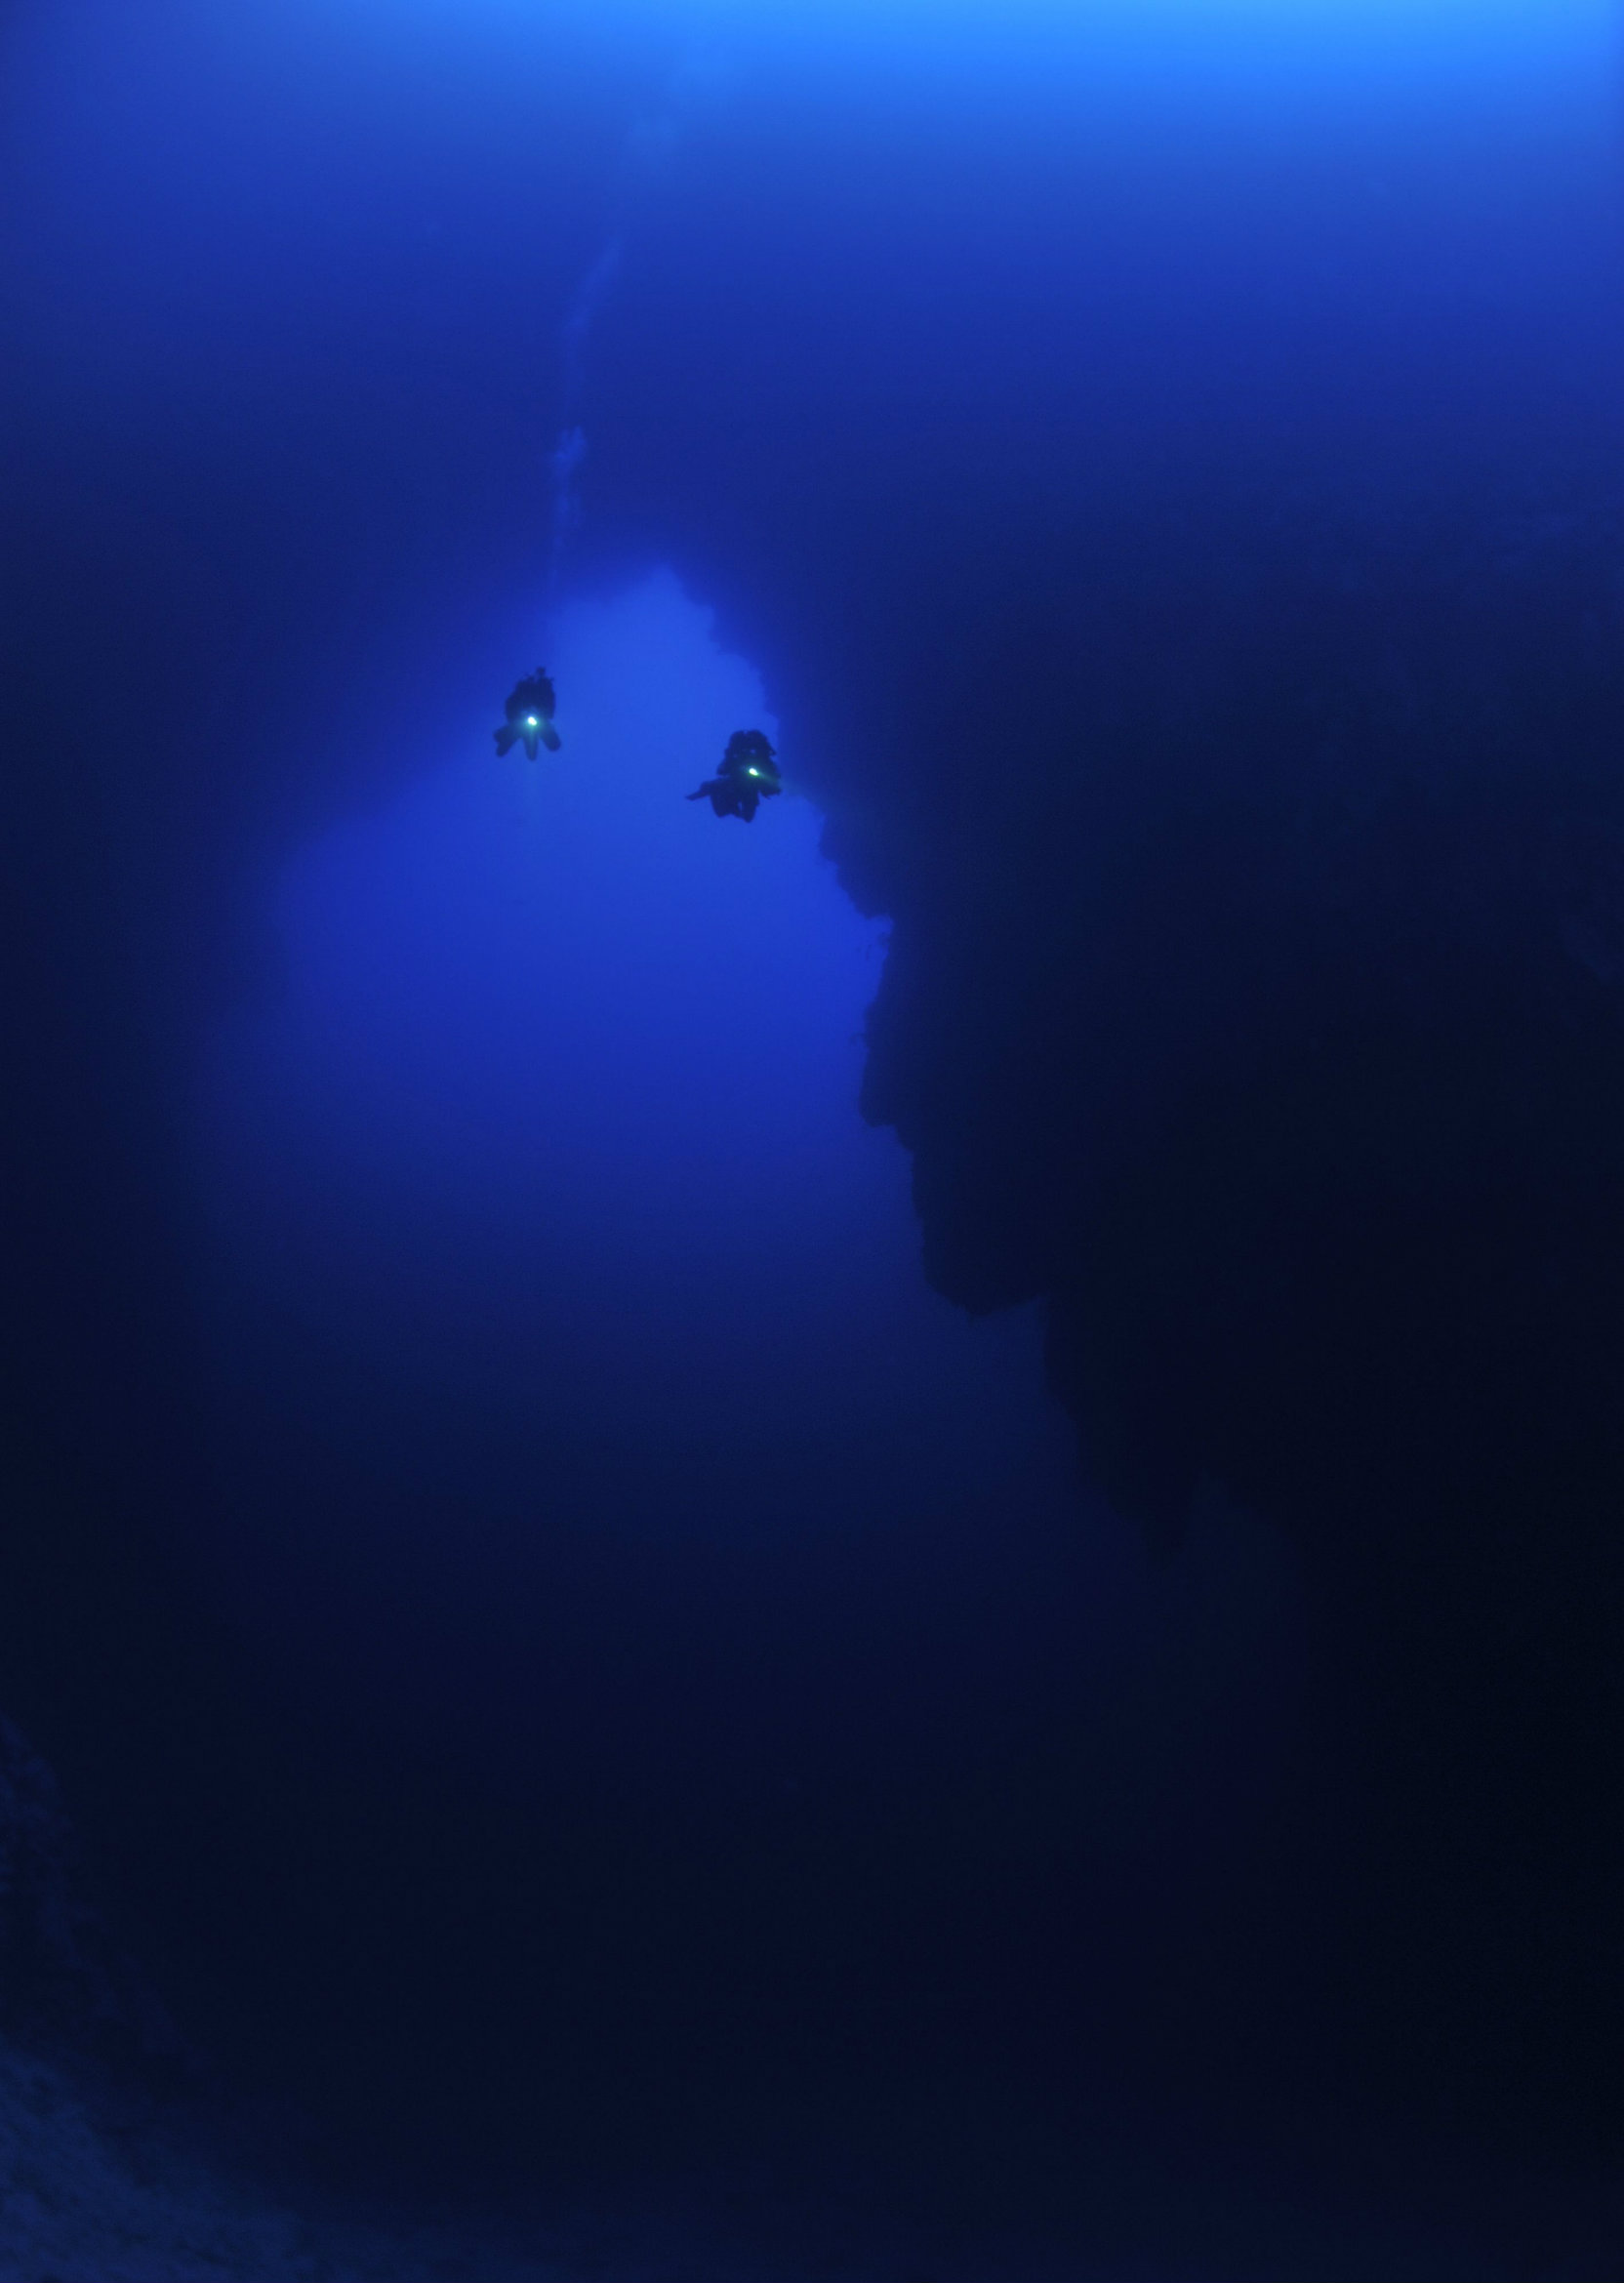 One of the reasons why people feel lost and haunted in the tunnel of the hole is nitrogen narcosis.